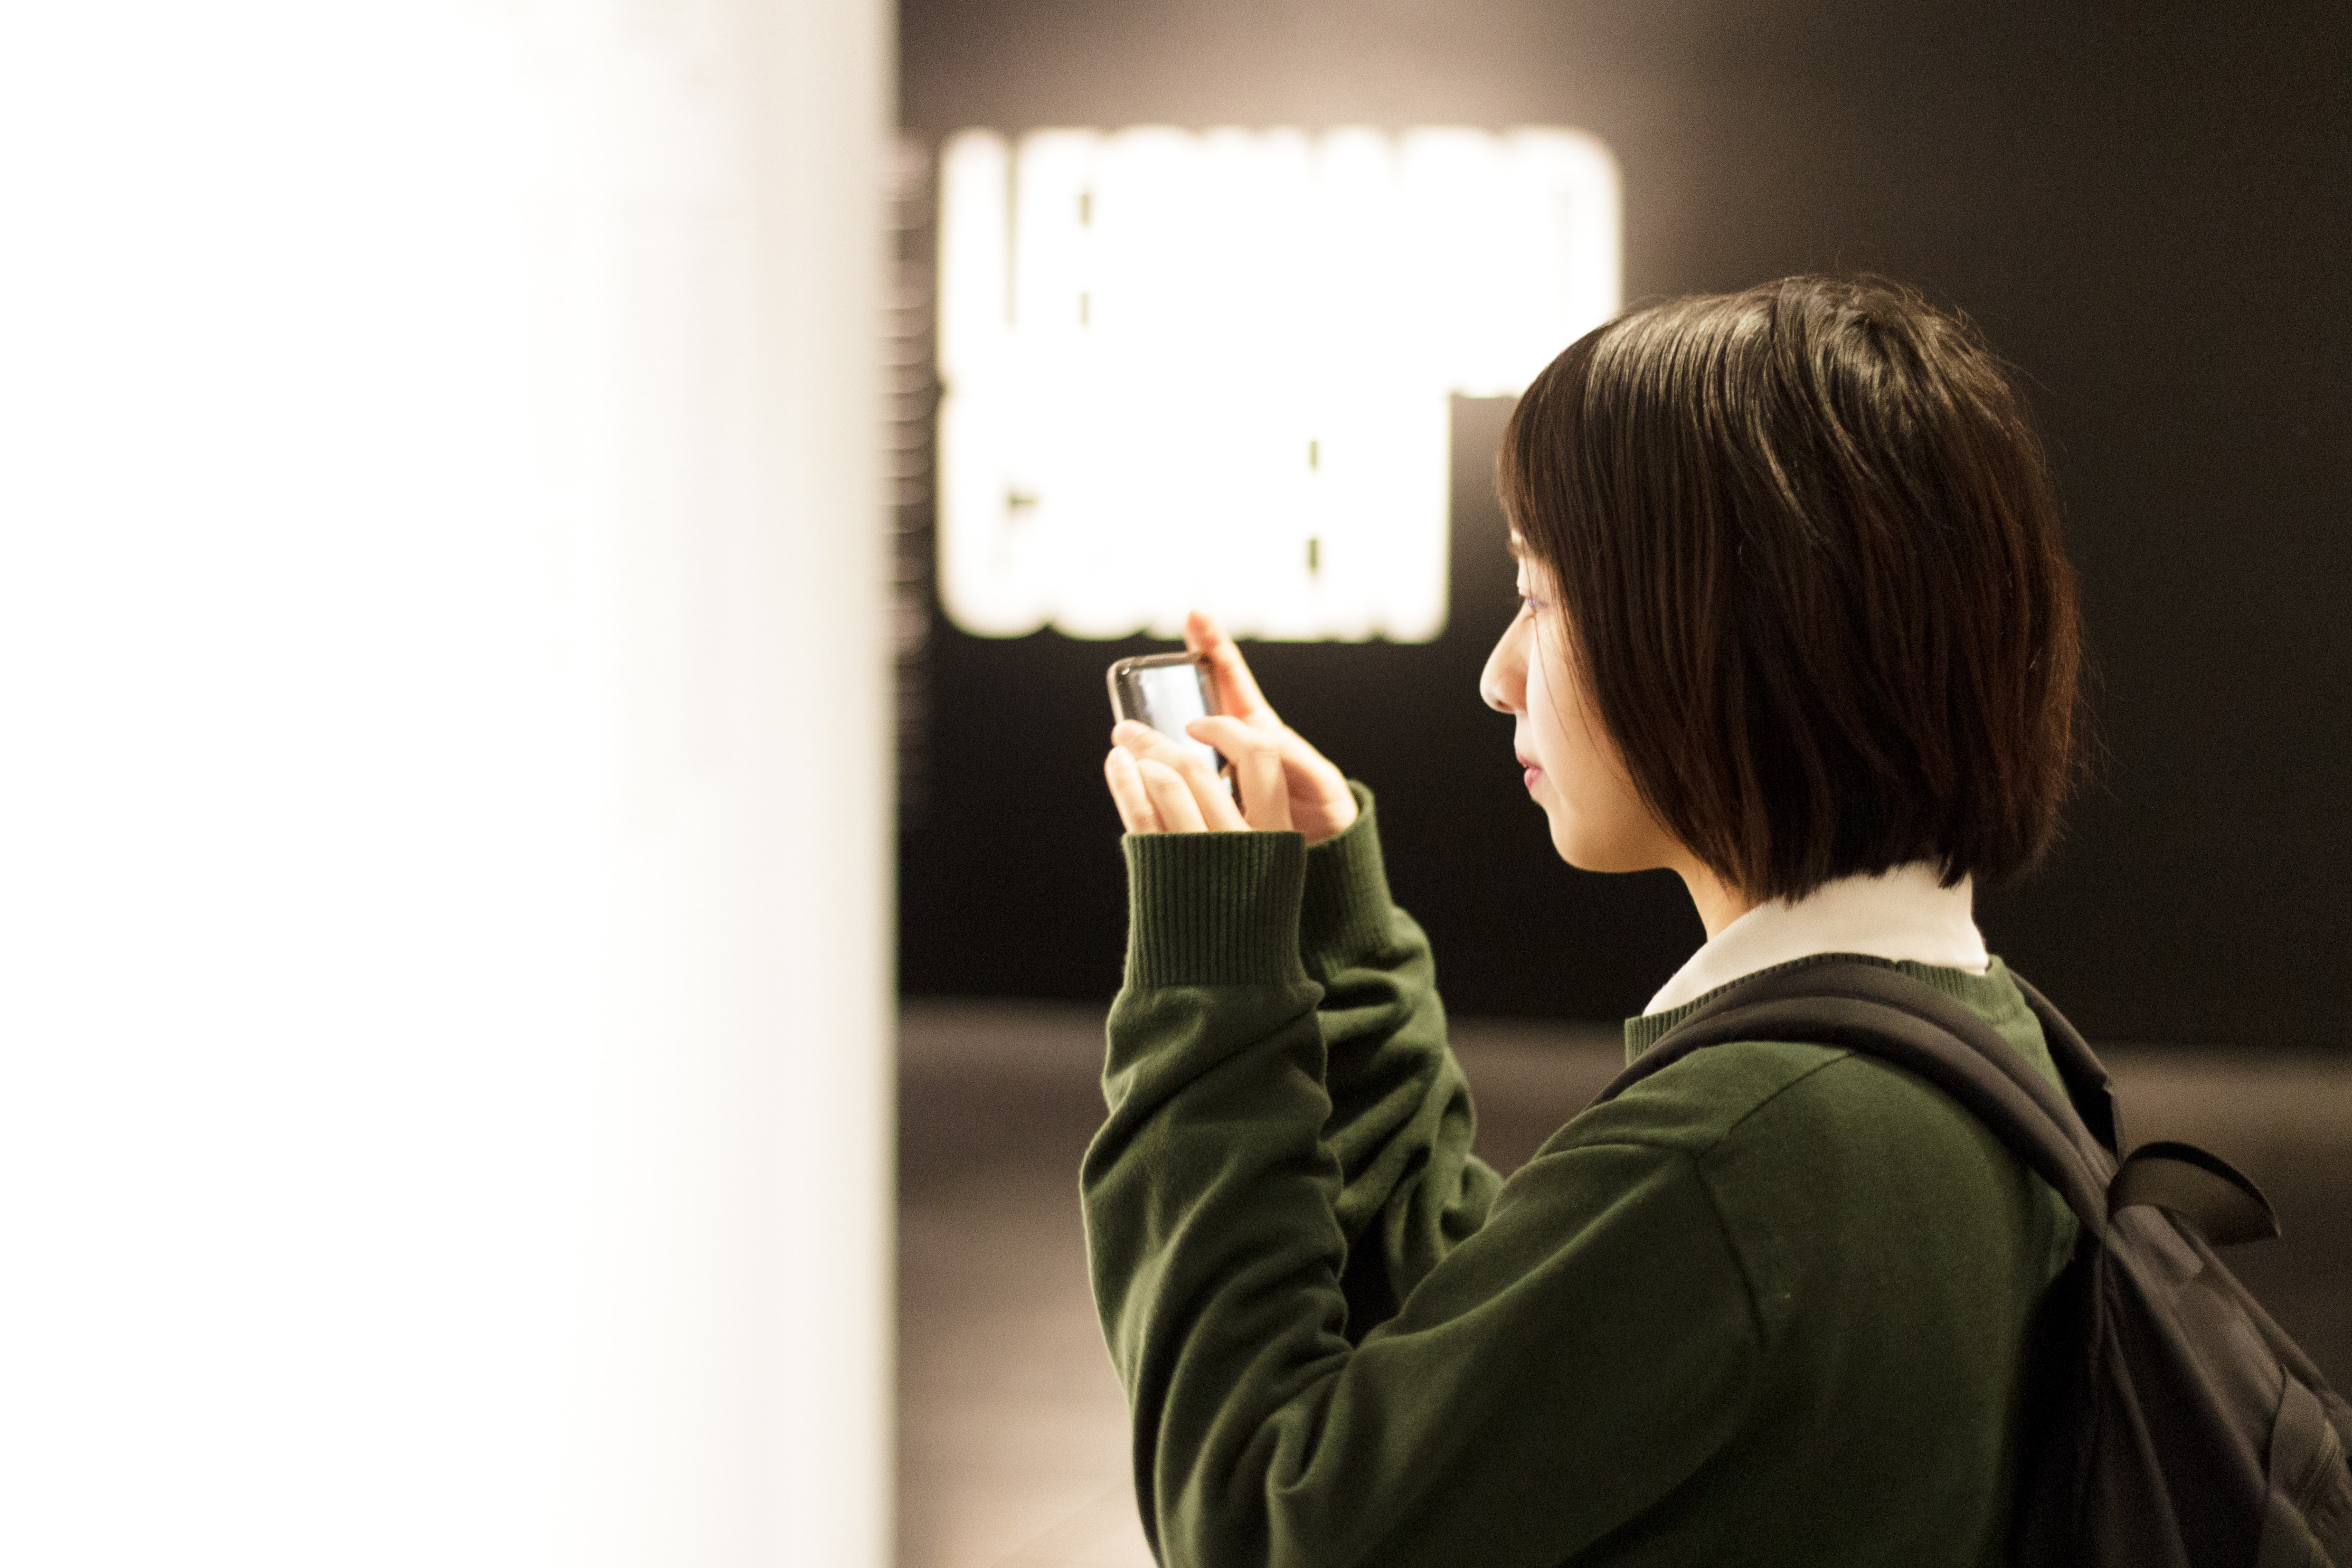 woman holding smartphone while taking picture